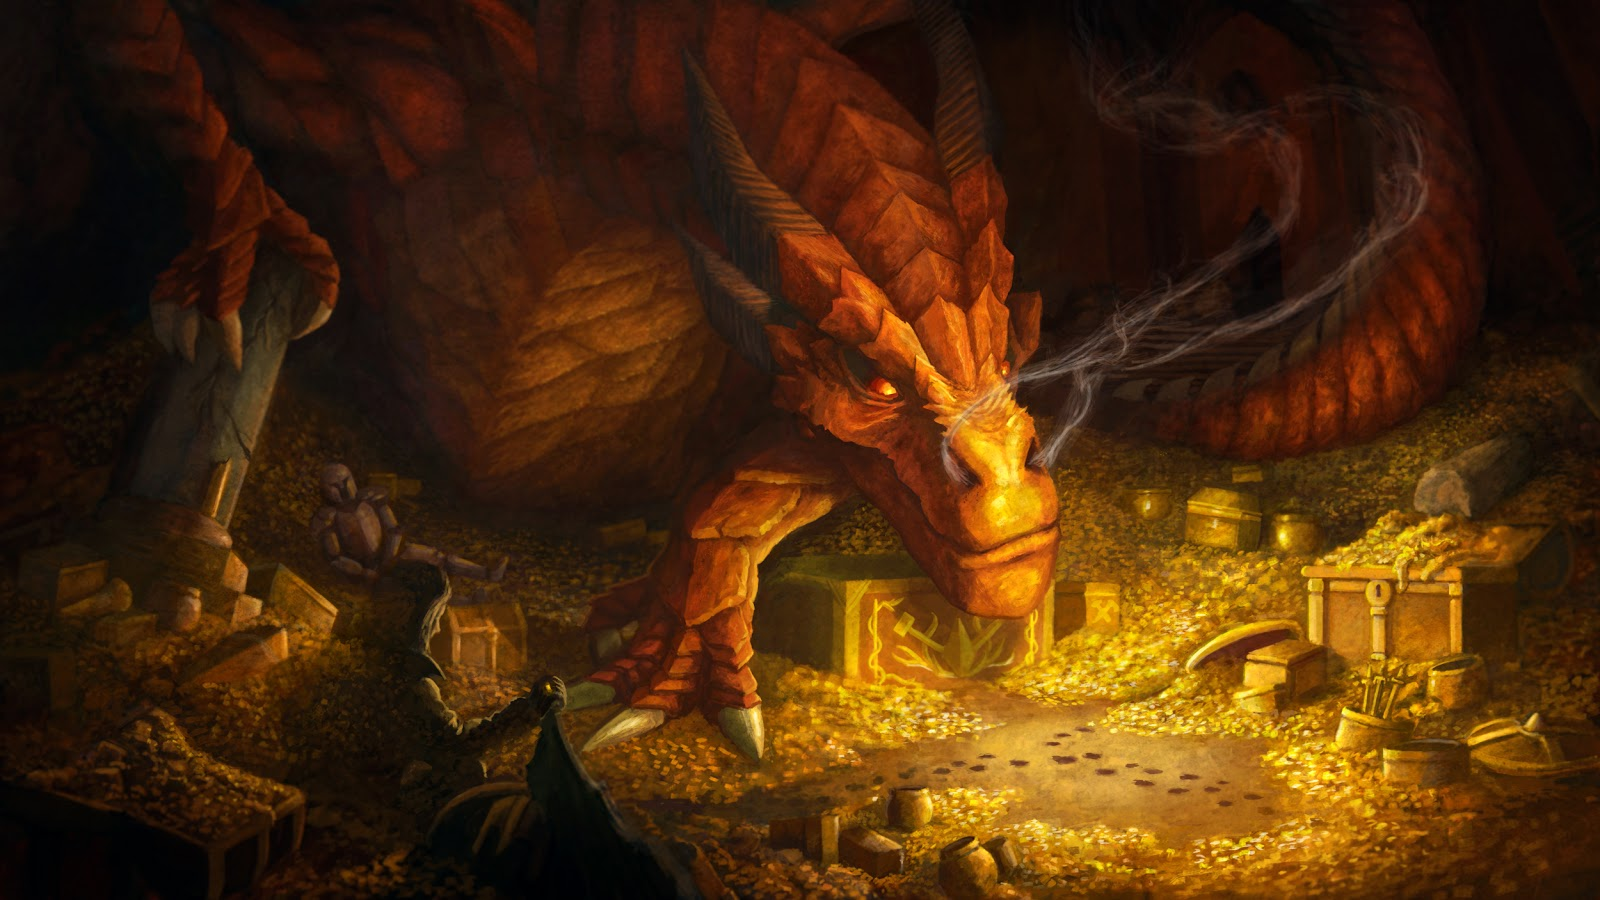 smaug the dragon hobbit - photo #32